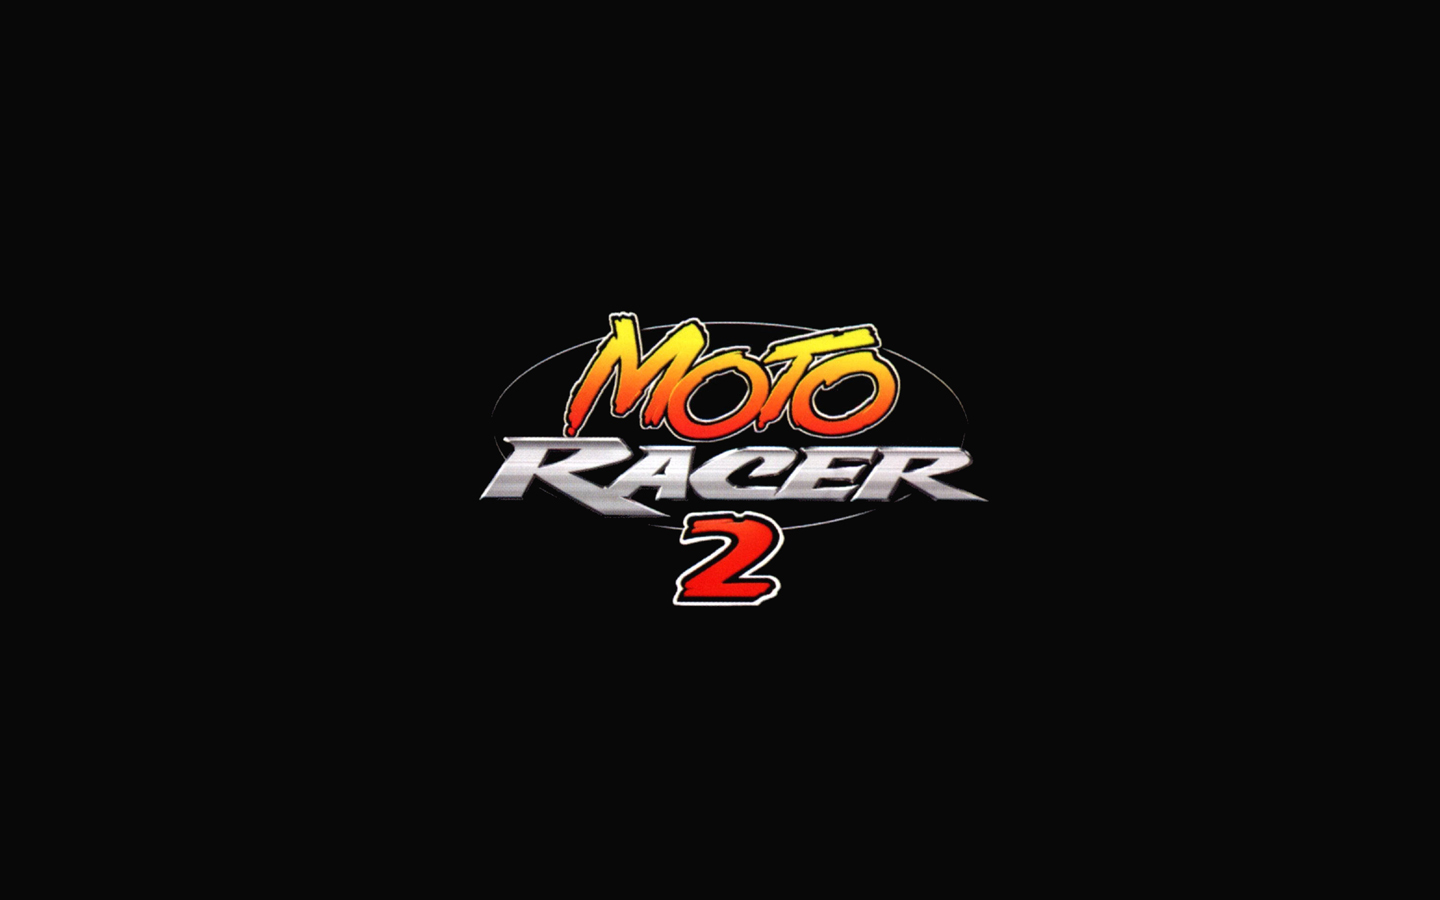 Moto Racer two motoracer HD Wallpaper